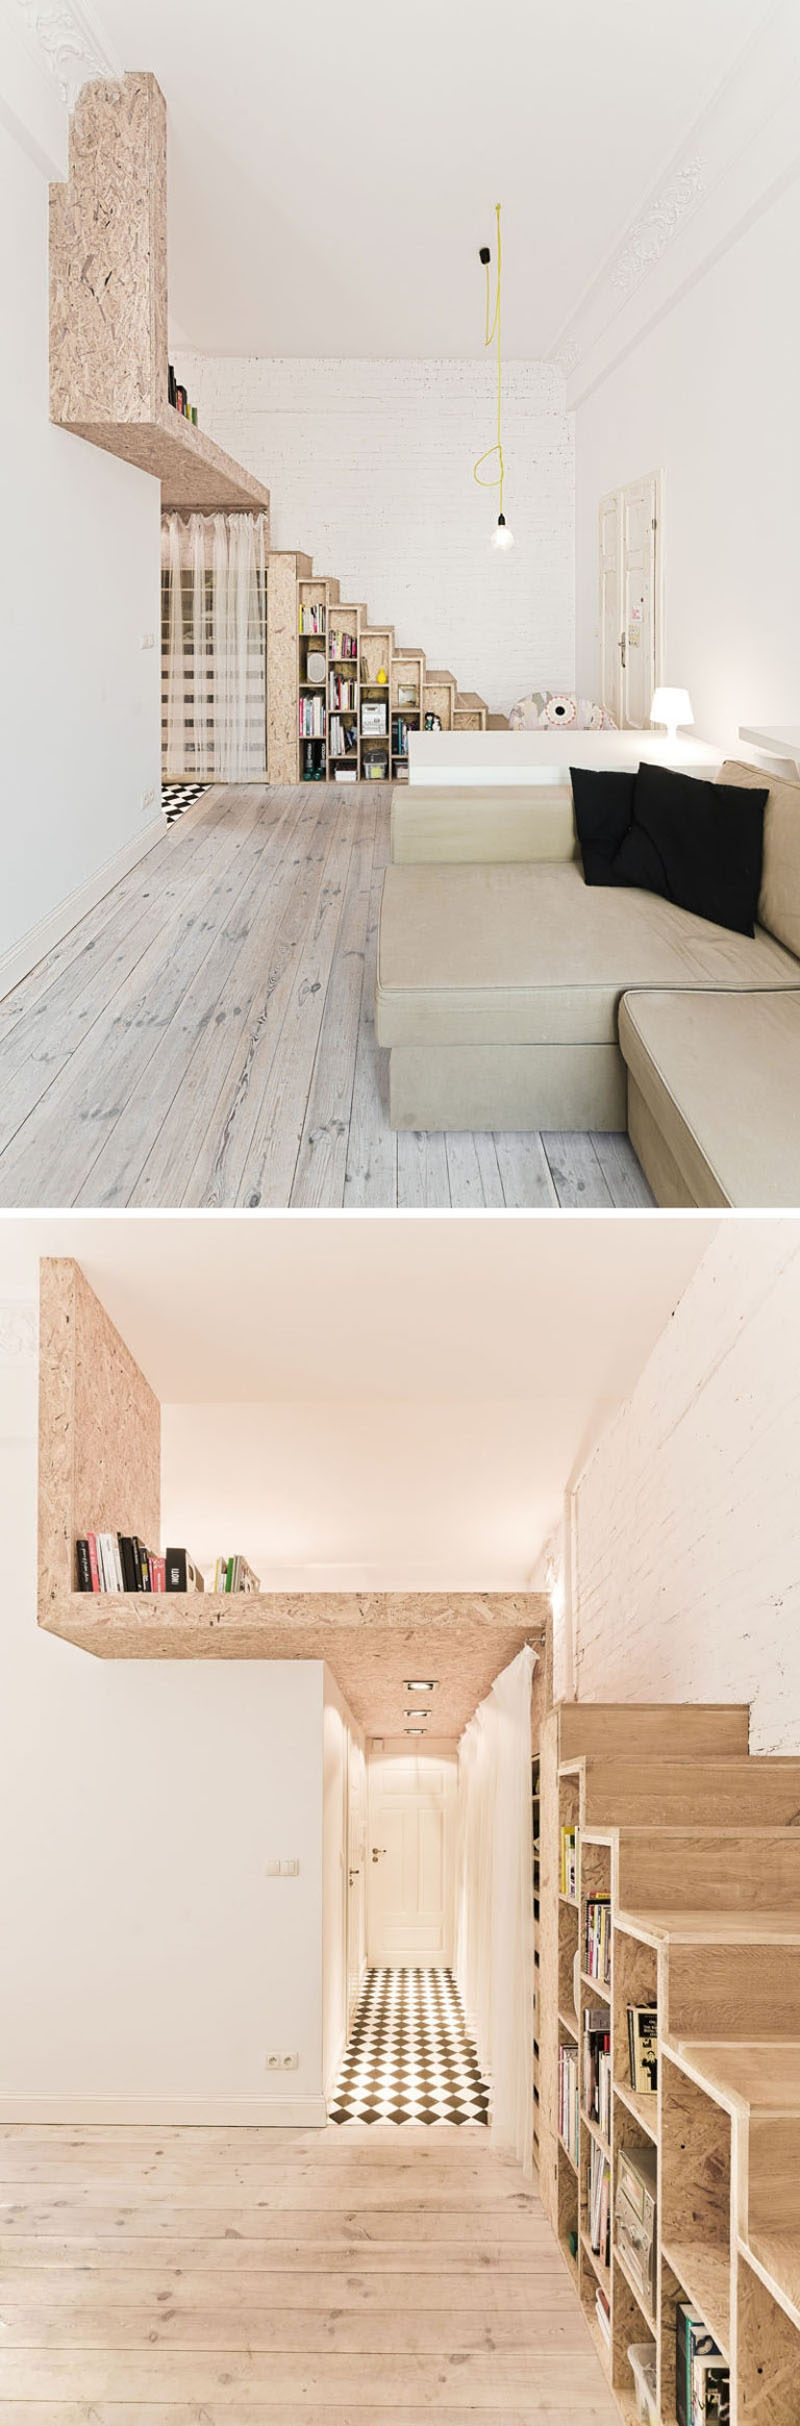 13 Stair Design Ideas For Small Spaces   Wooden Stairs Design For Small Spaces   Apartment   Cabinet   2Nd Floor Small Terrace Concrete   Residential   Outdoor